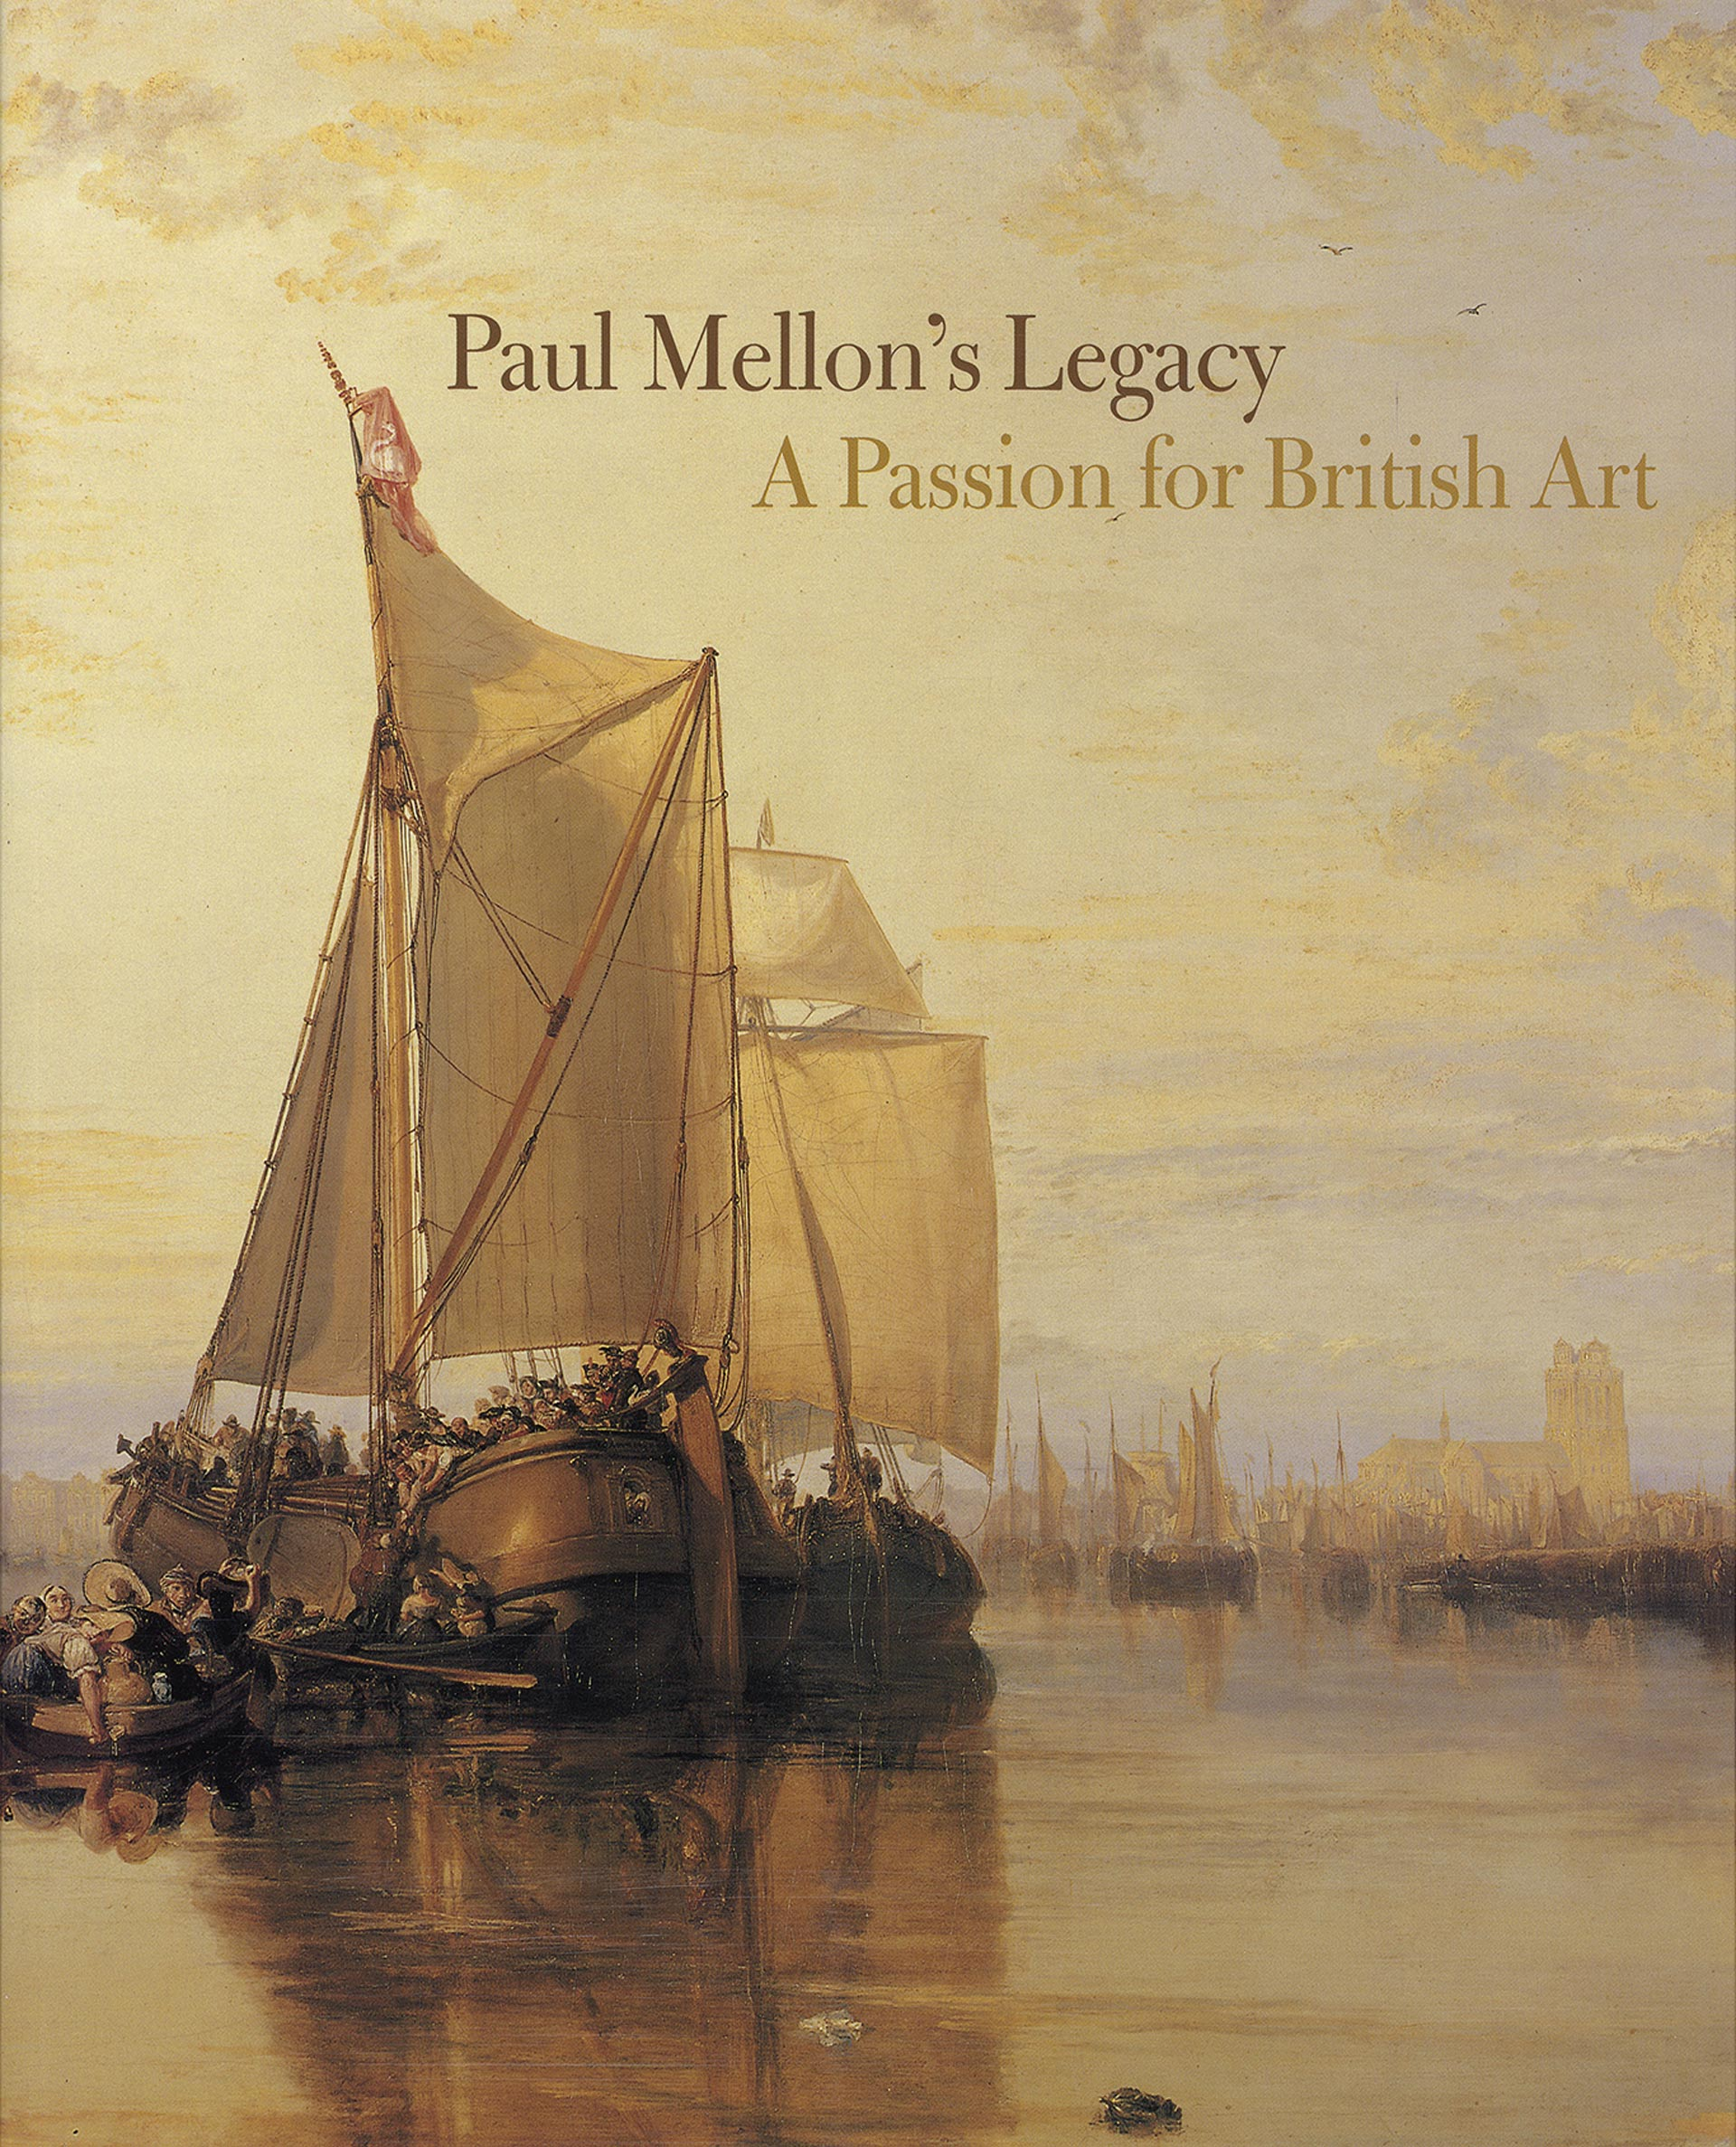 Cover, Paul Mellon's Legacy: A Passion for British Art